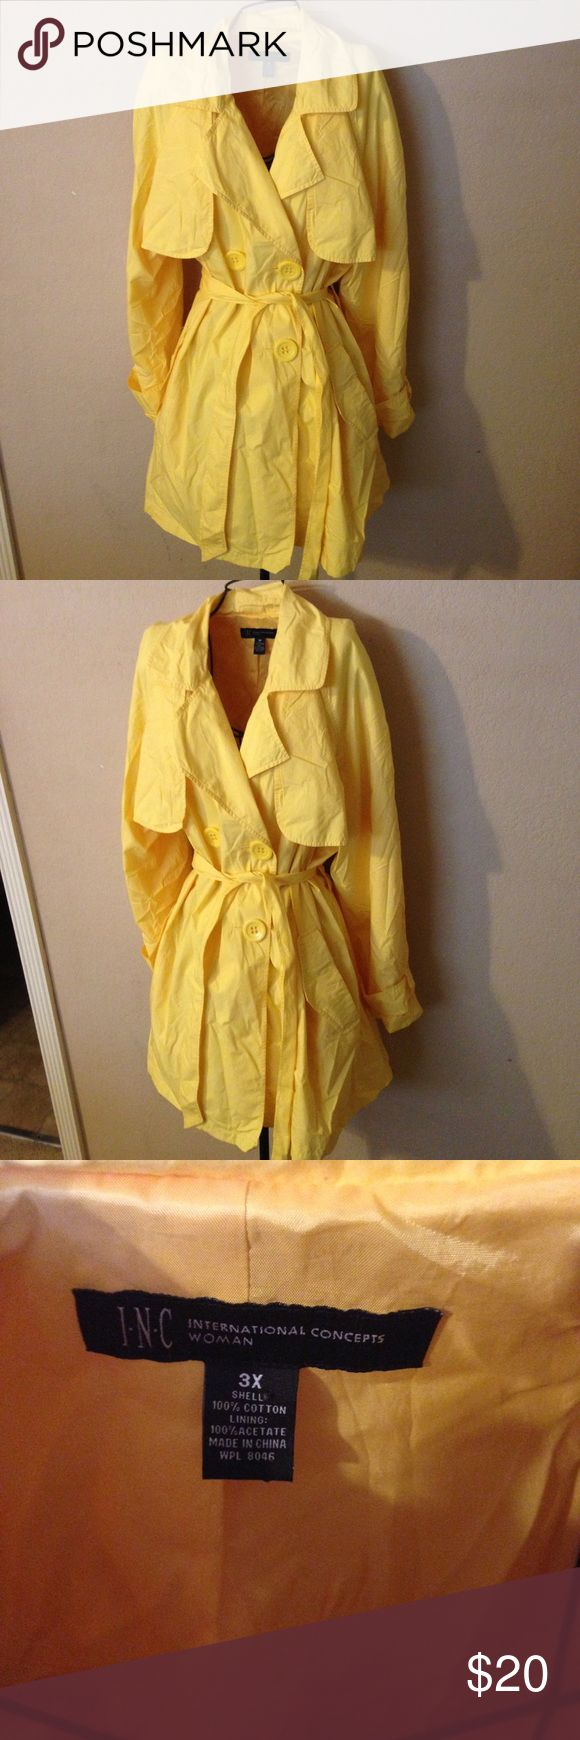 Woman's Macy's inc trench coat size 3X look Very stylish cute coat 1 front button is missing coat priced as is INC International Concepts Jackets & Coats Trench Coats